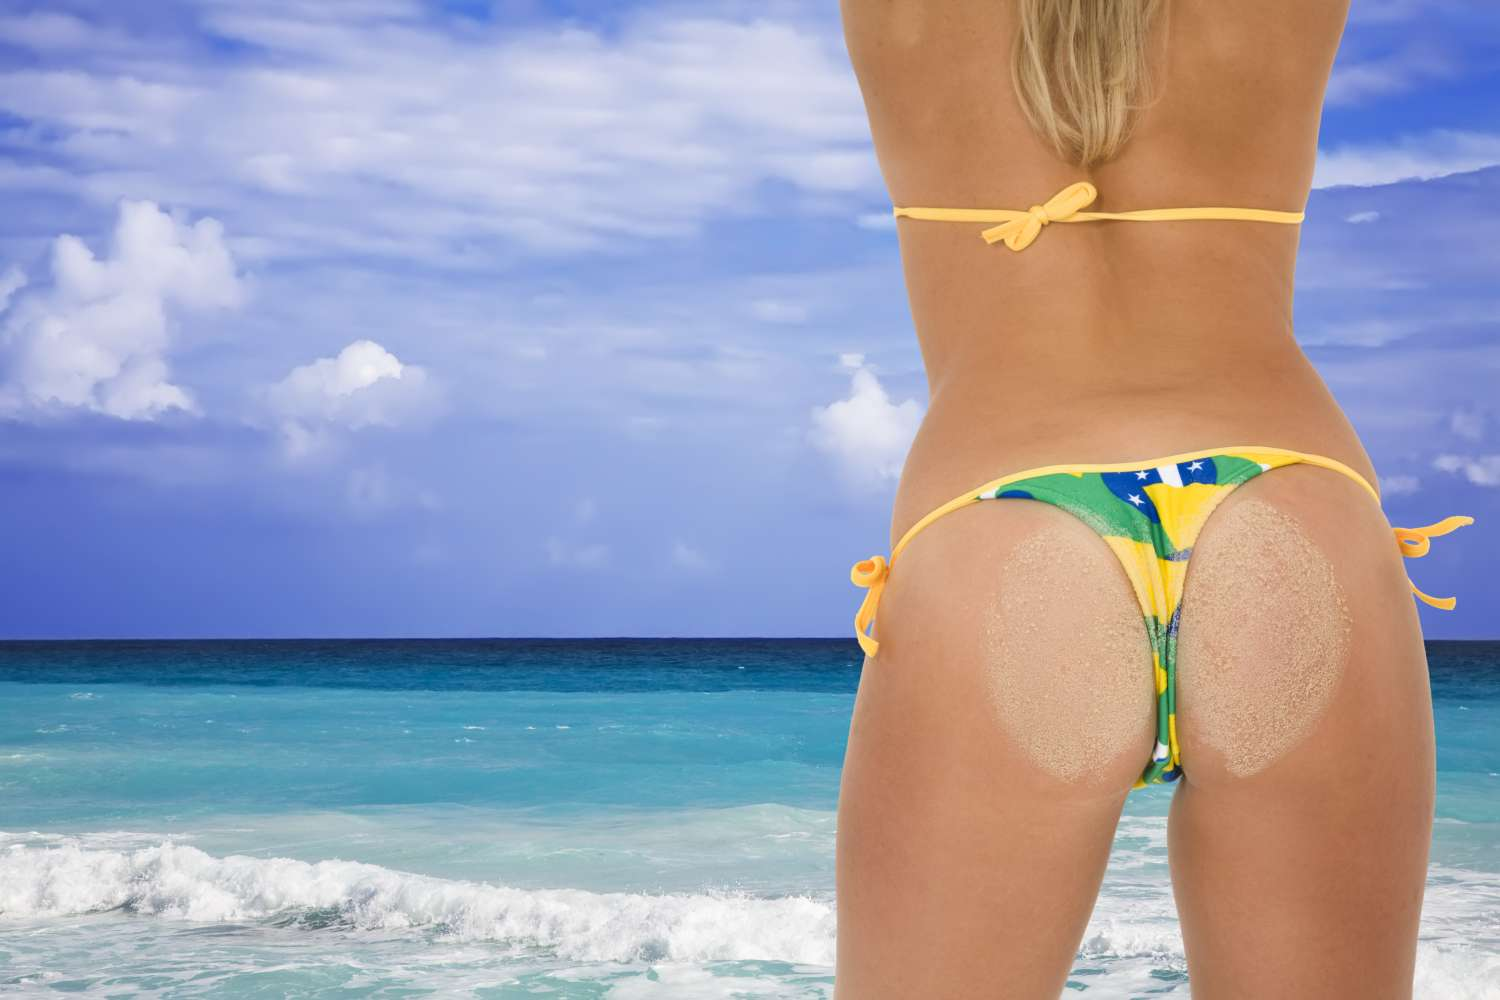 Your skin tone and buttock projection